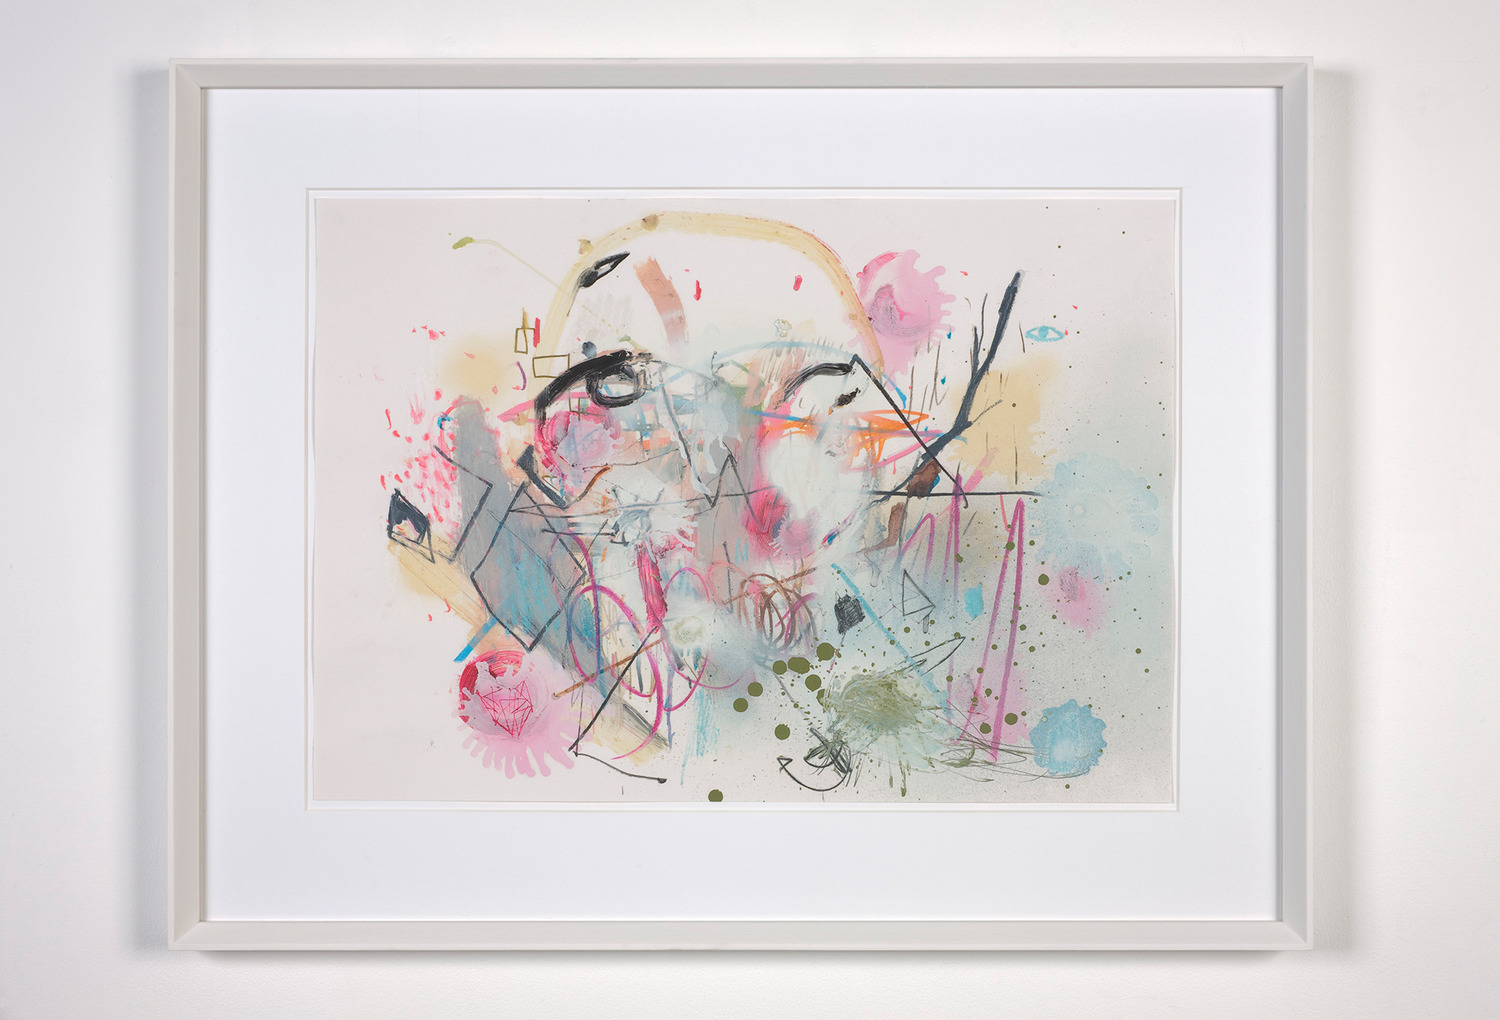 Untitled, 2012, Pencil, pastel, oil bar and spray-paint on paper, 61.5 x 78.5 x 3 cm